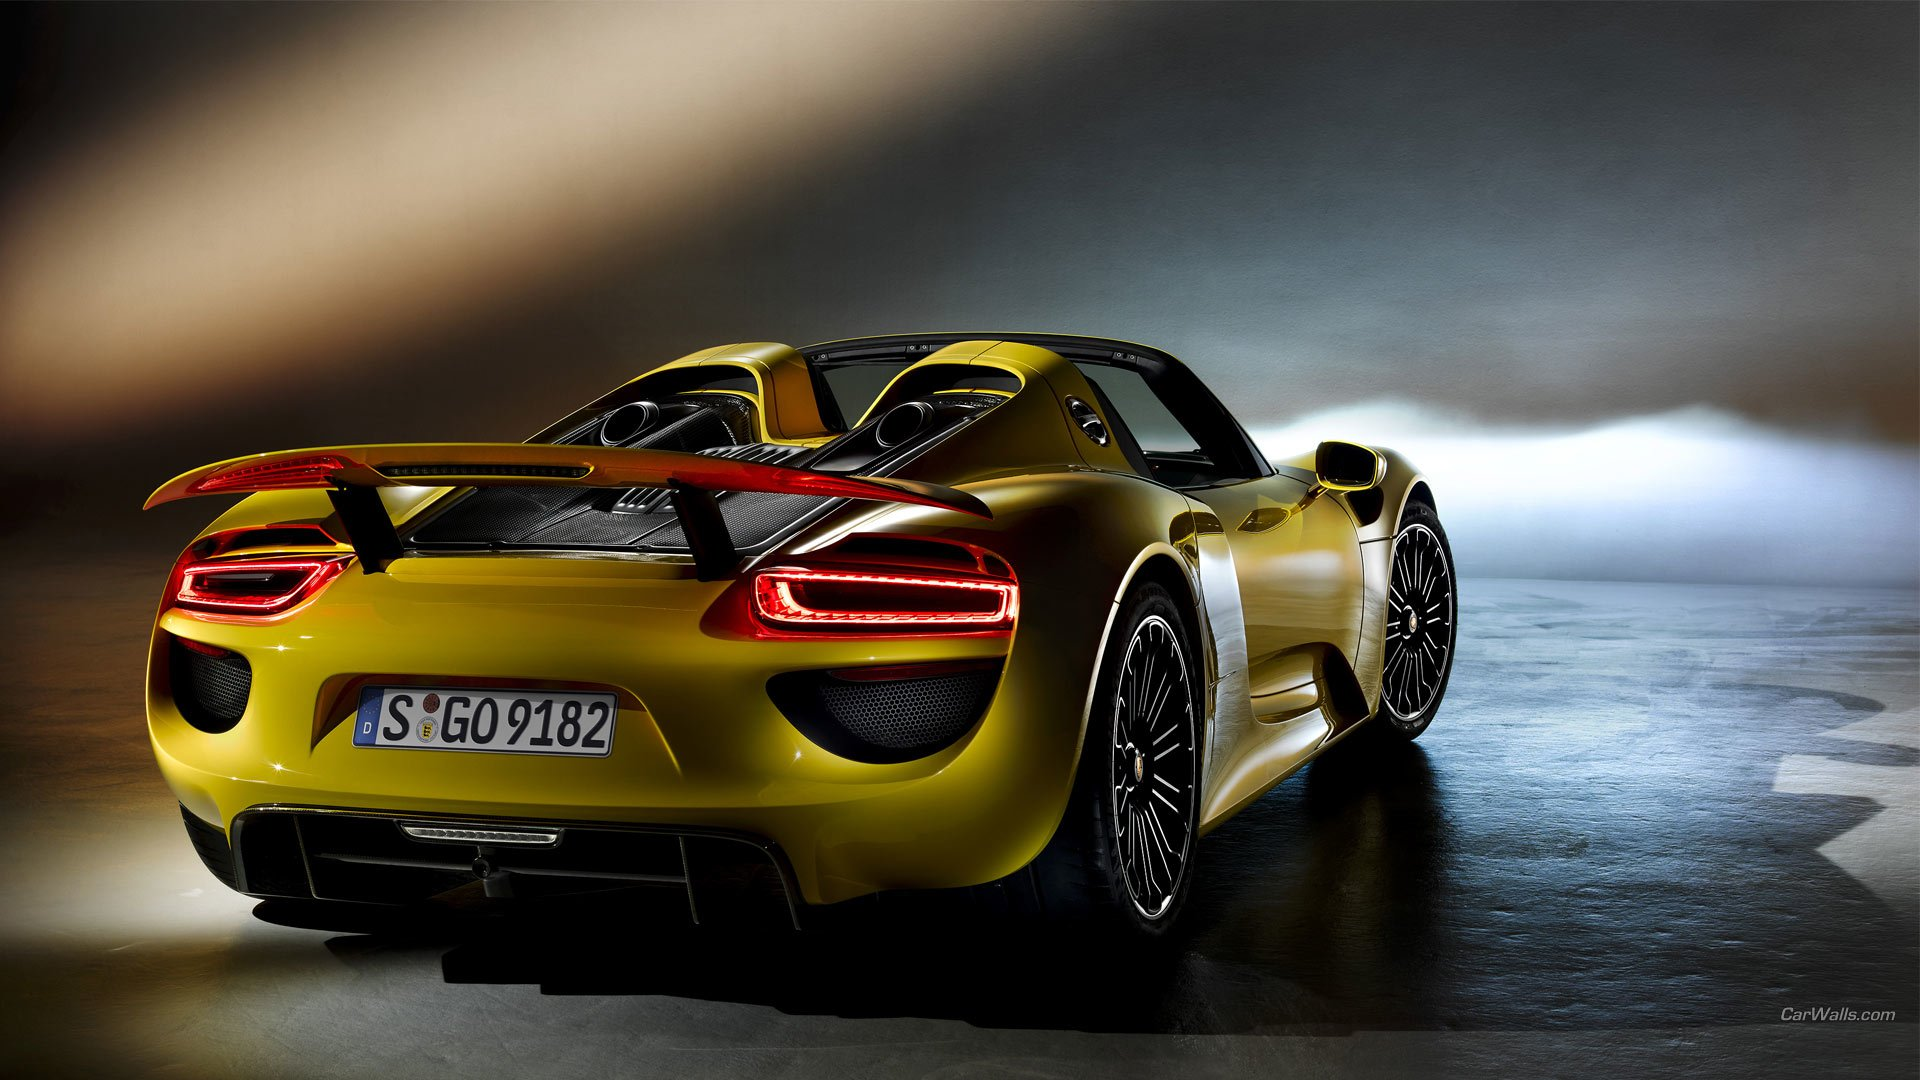 porsche 918 spyder full hd wallpaper and hintergrund 1920x1080 id 469241. Black Bedroom Furniture Sets. Home Design Ideas